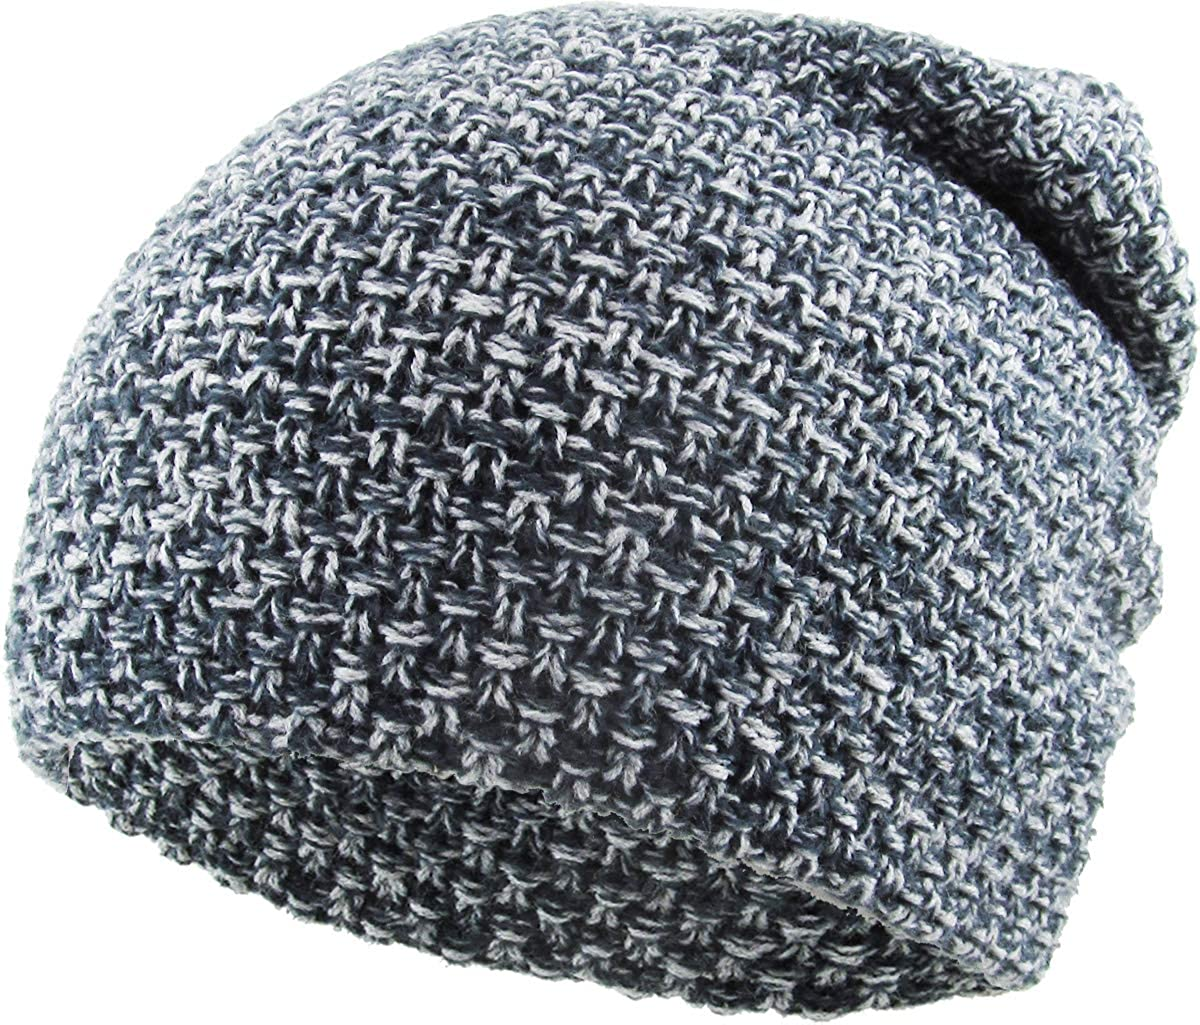 Waffle Knit discount Lightweight Slouchy Beanie Skull Style Gorgeous Win Cap Baggy